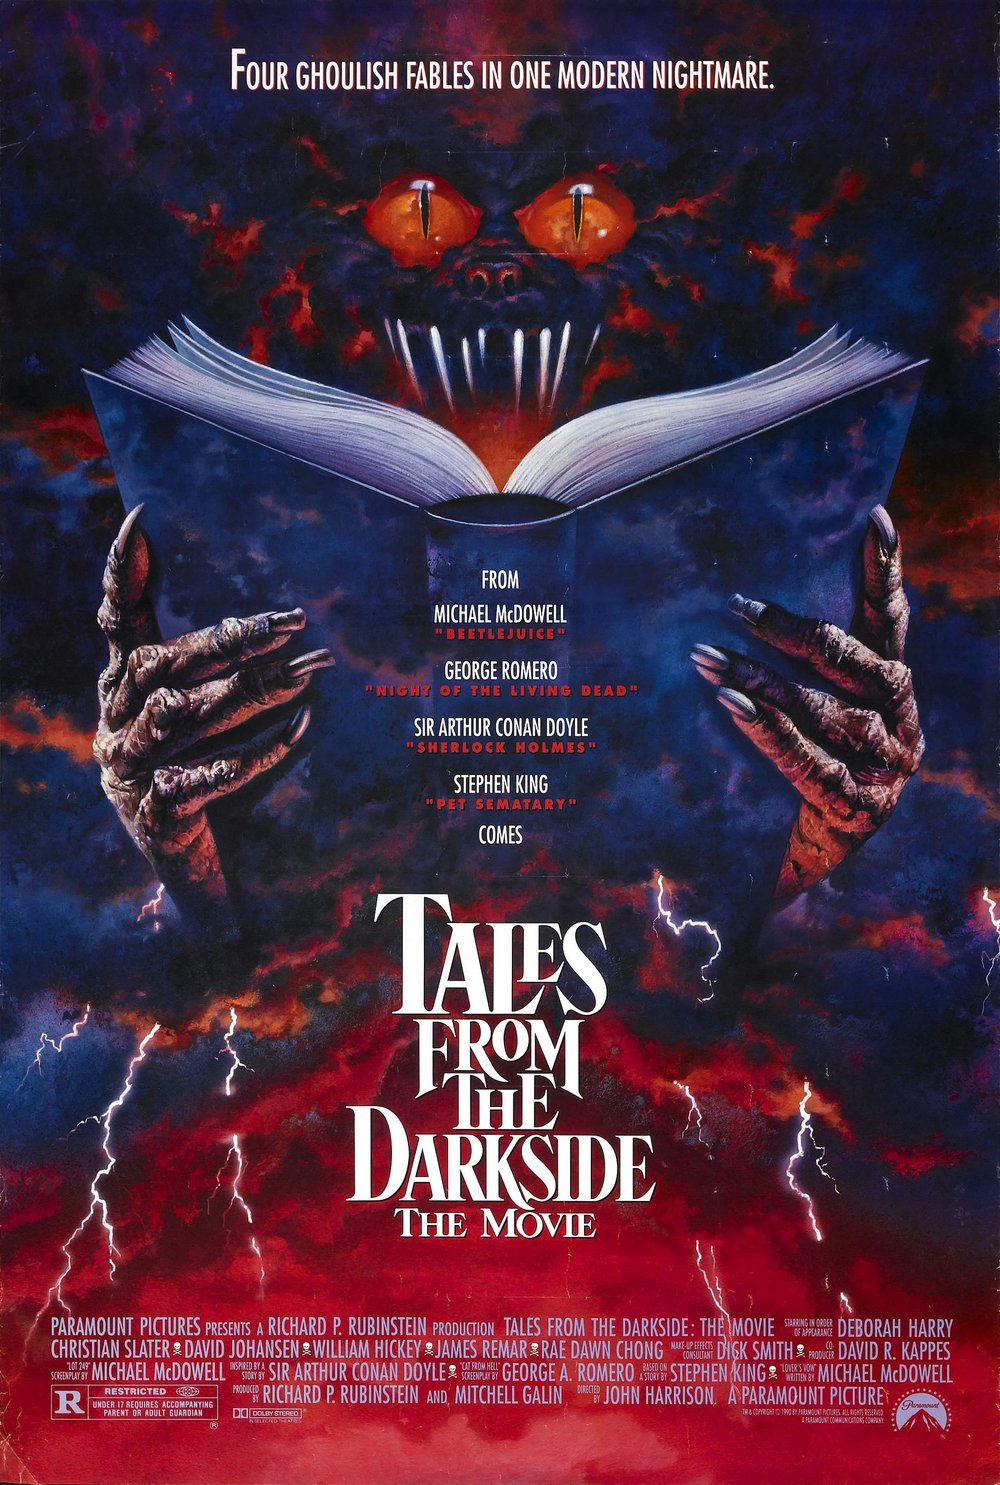 tales_from_darkside_poster_01.jpg